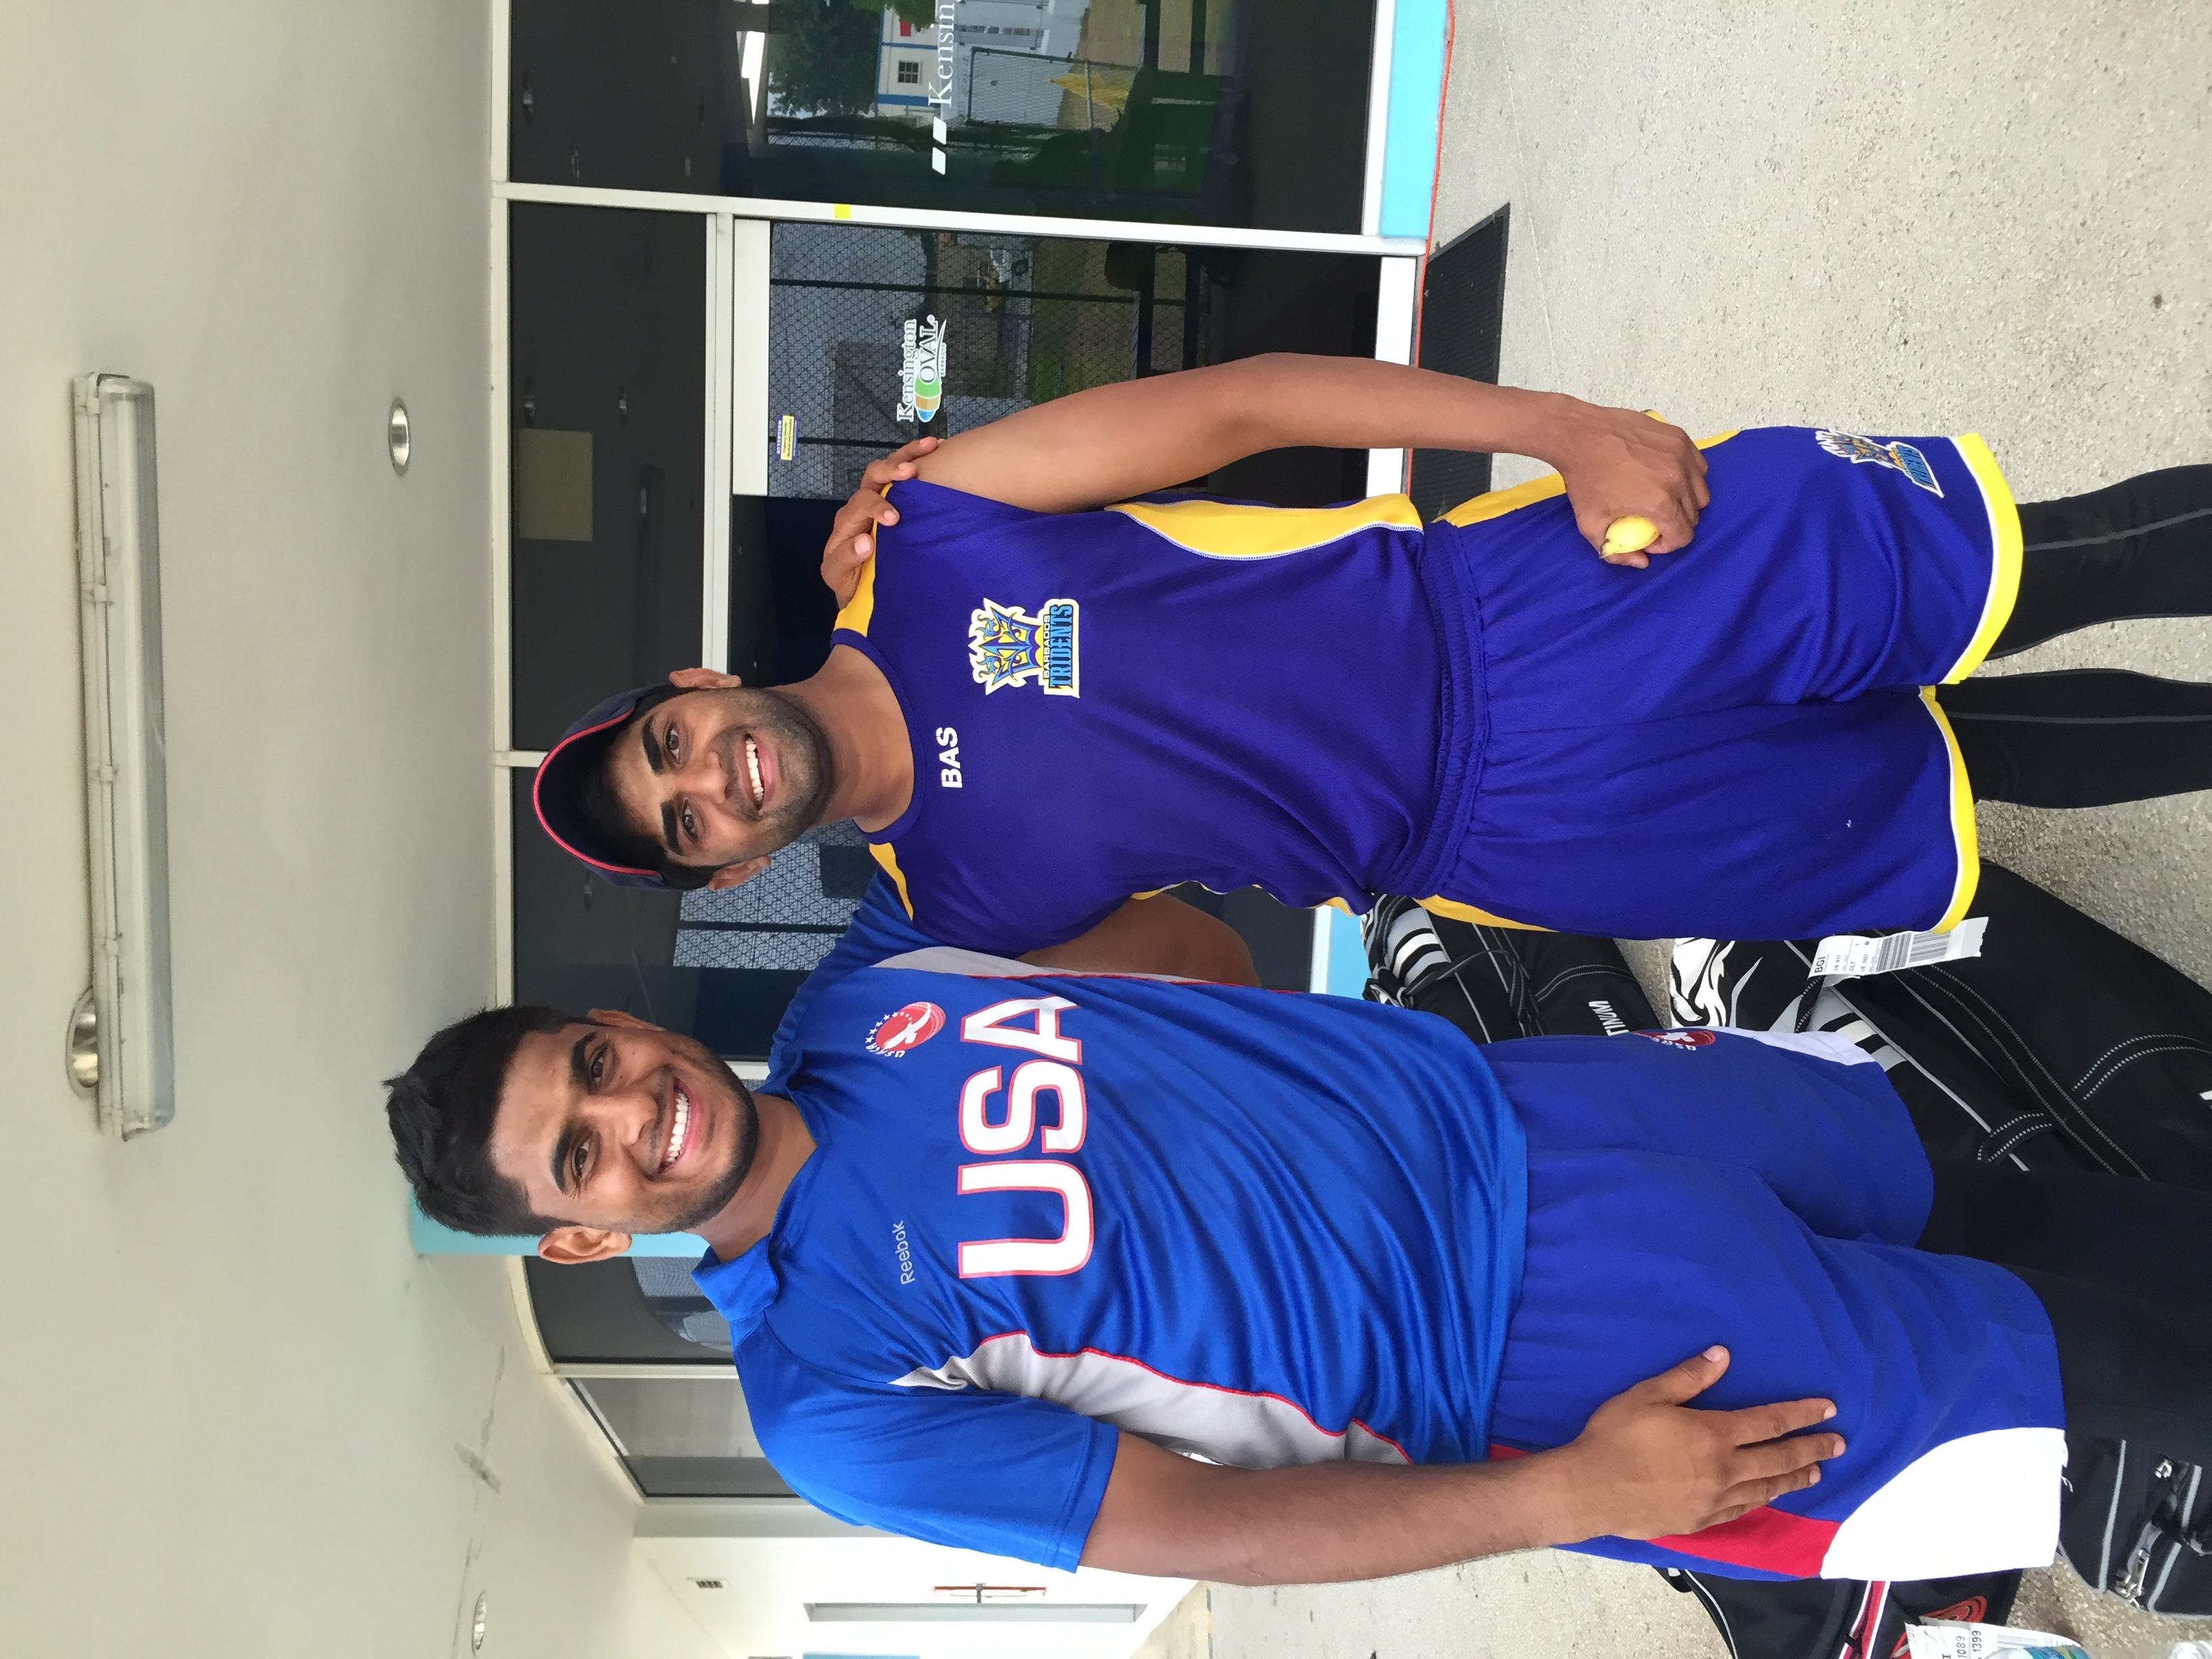 Adil Bhattis Tour with the Barbados Tridents